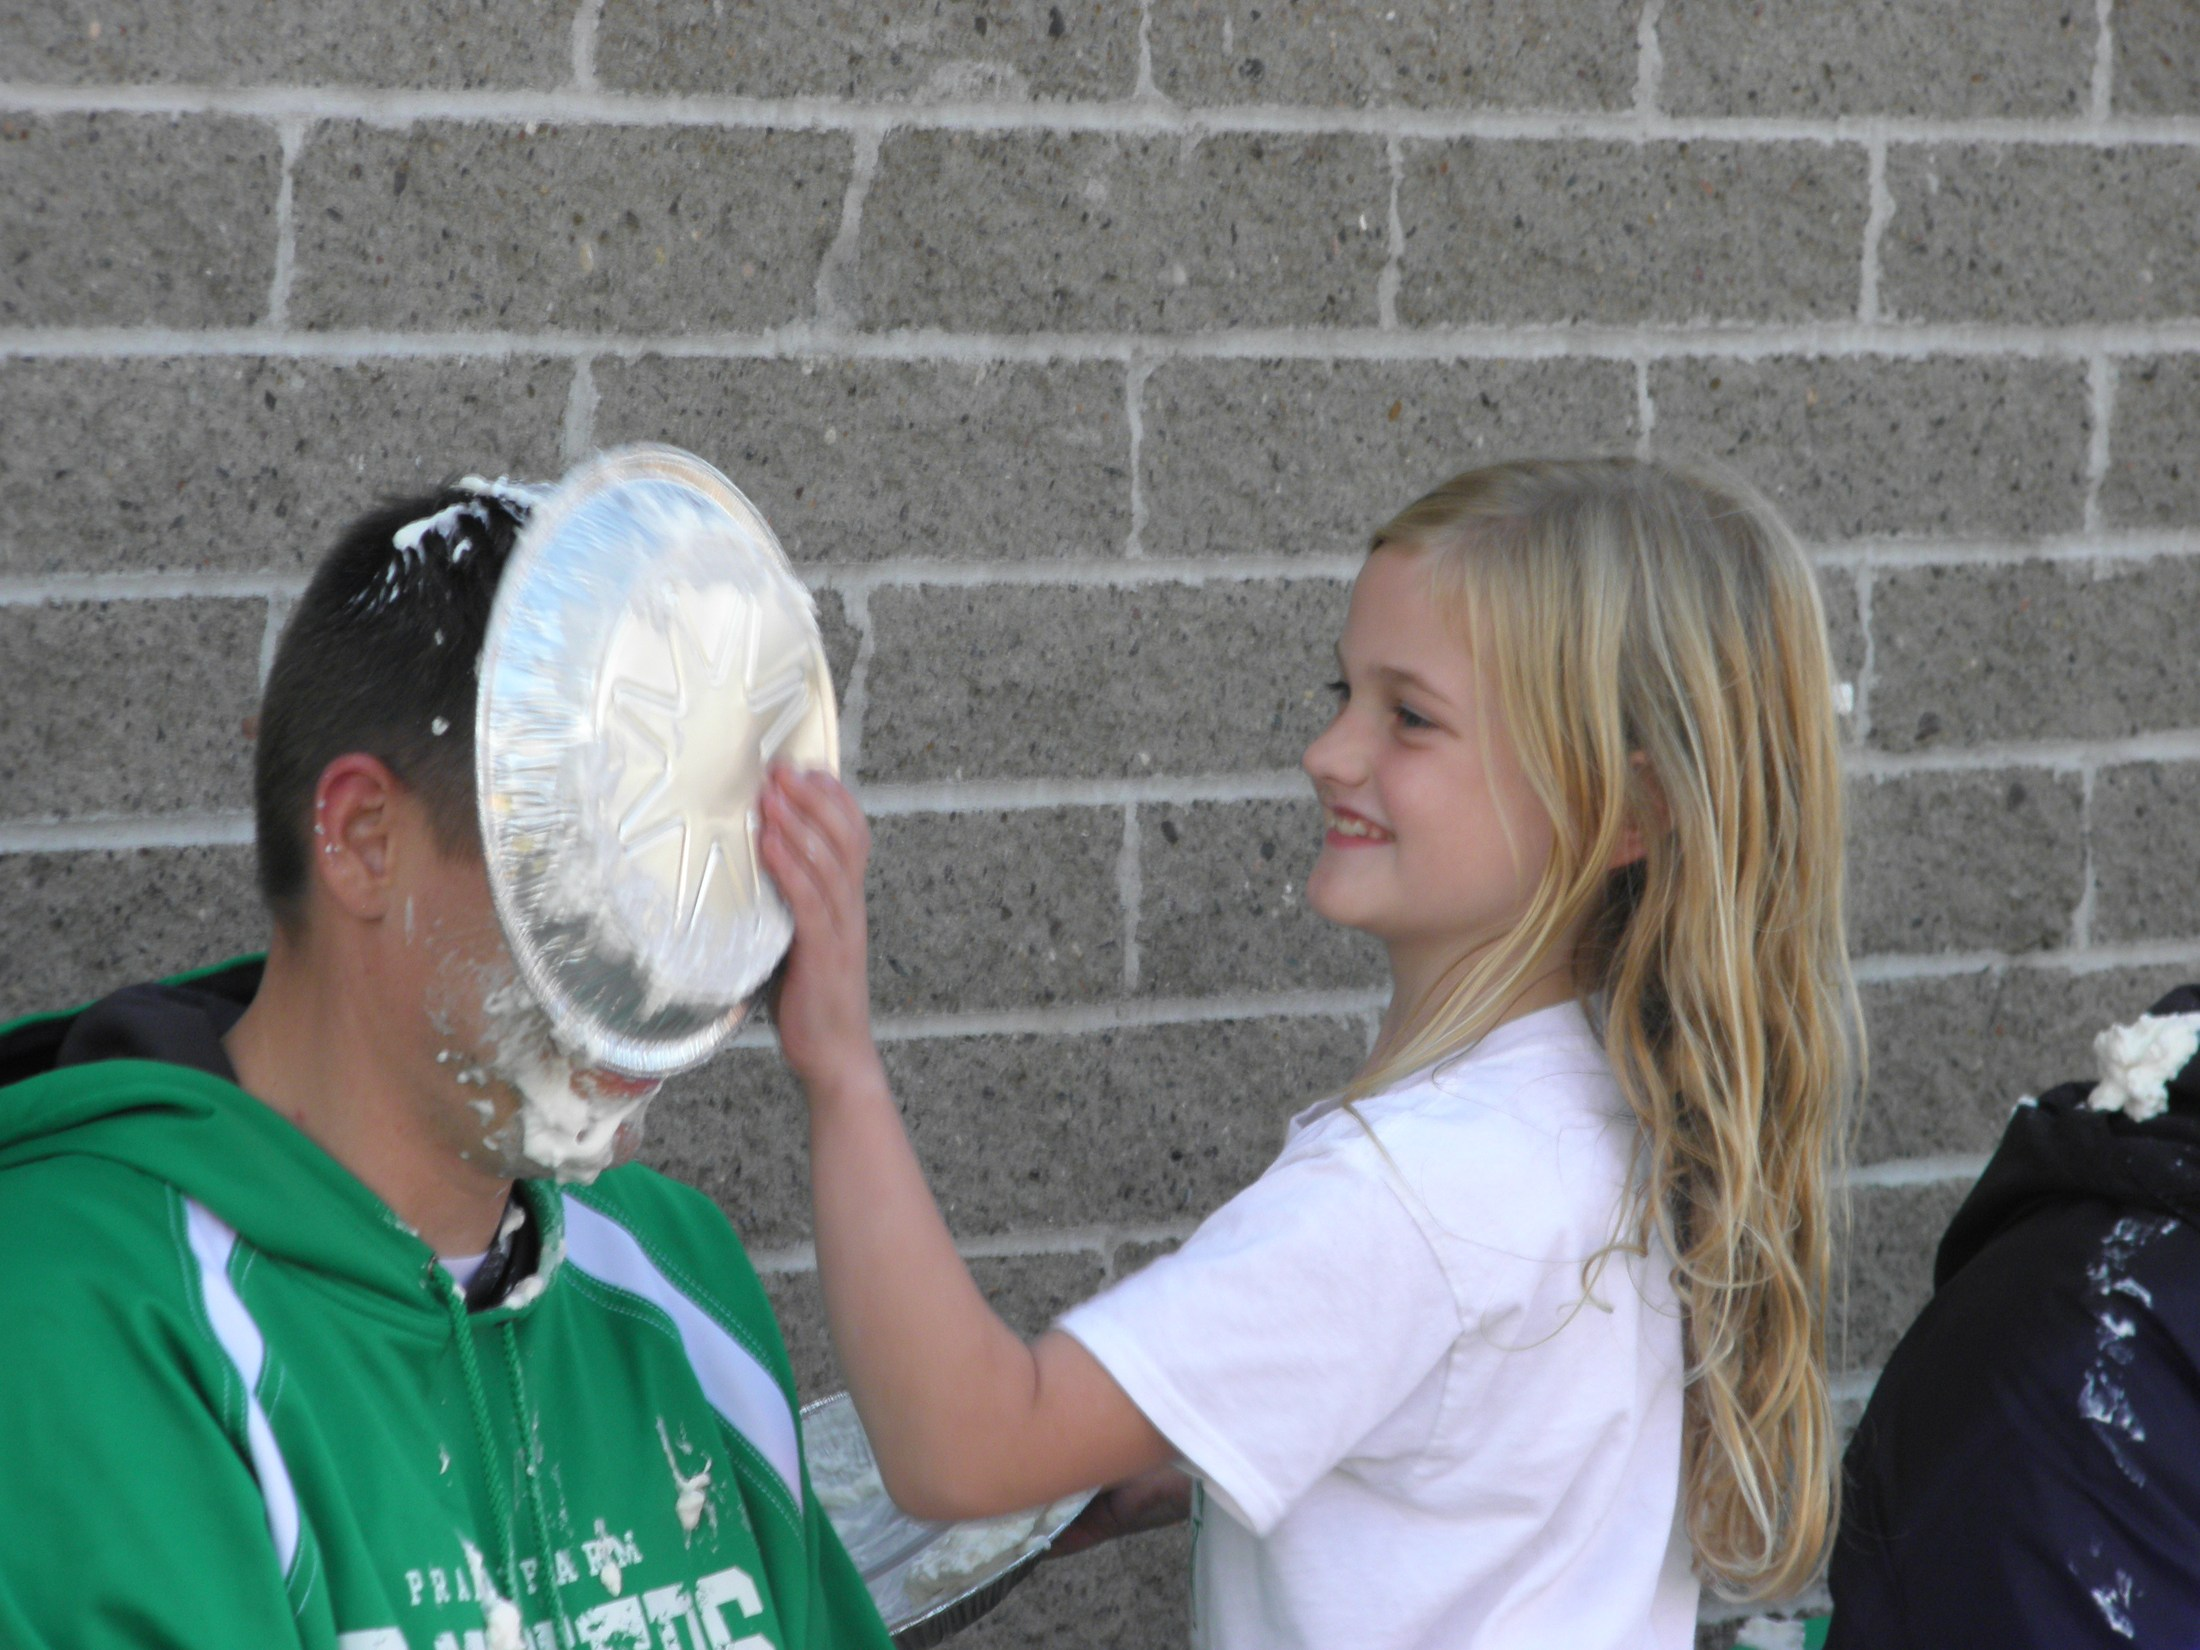 Student holding pie pan against principal's face.